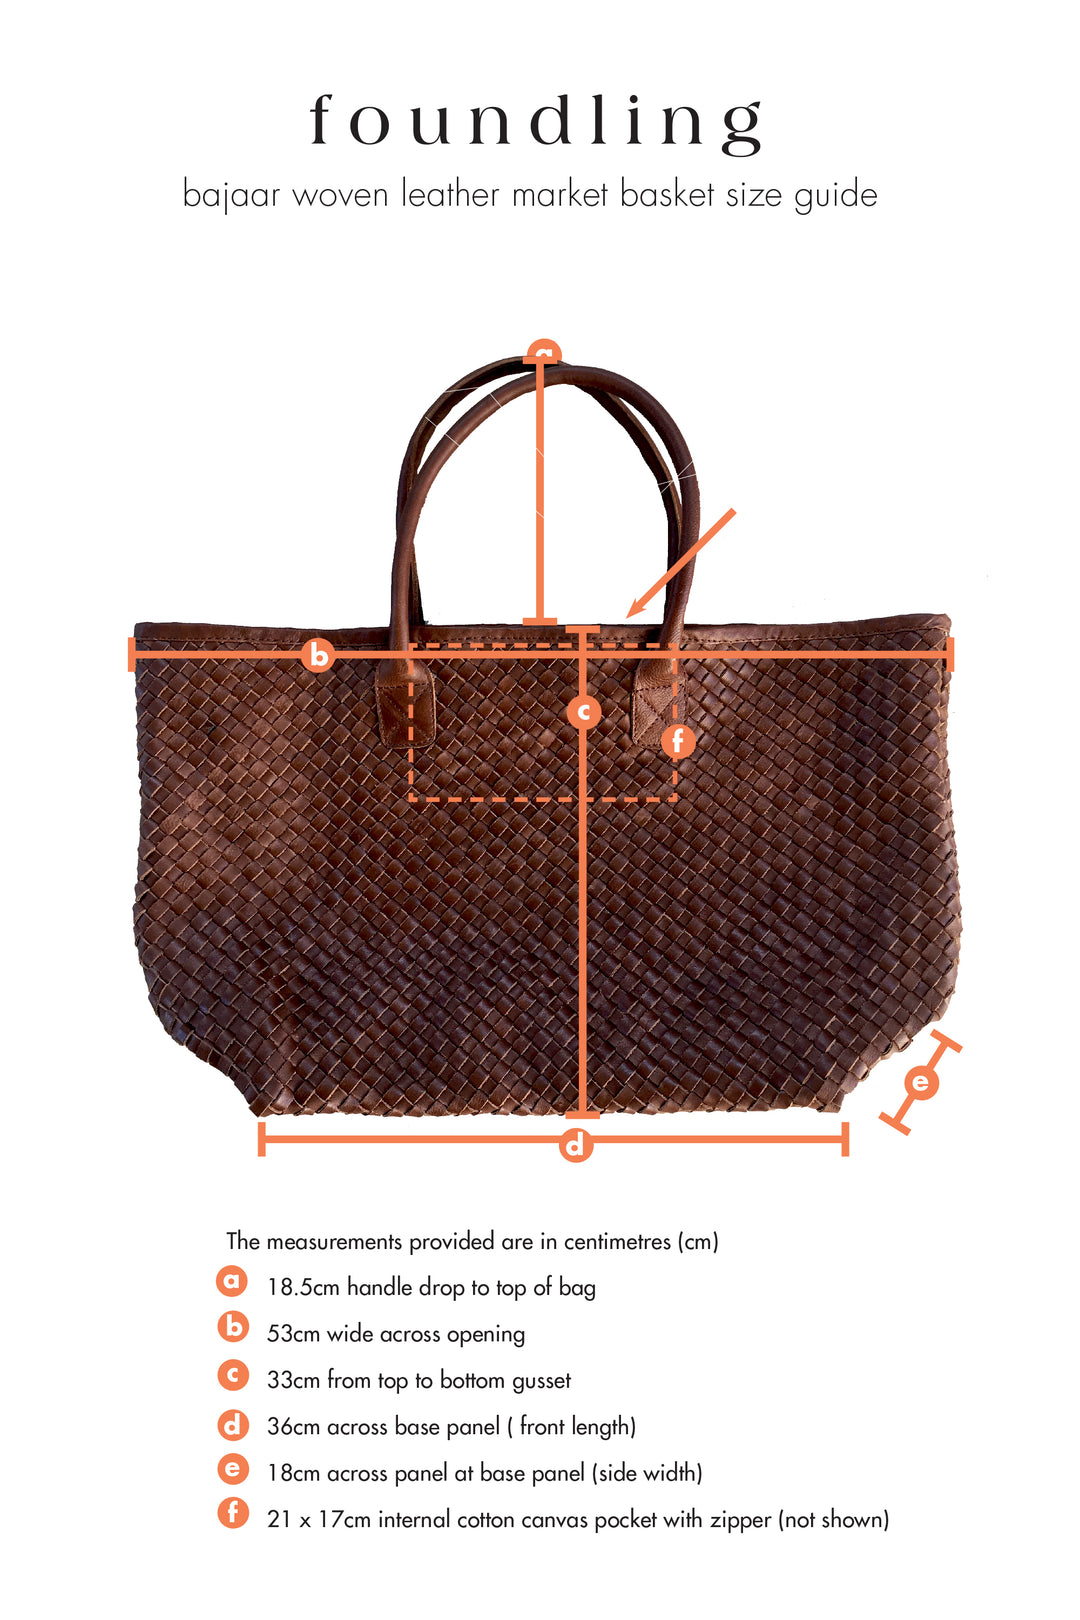 Bajaar woven leather market basket